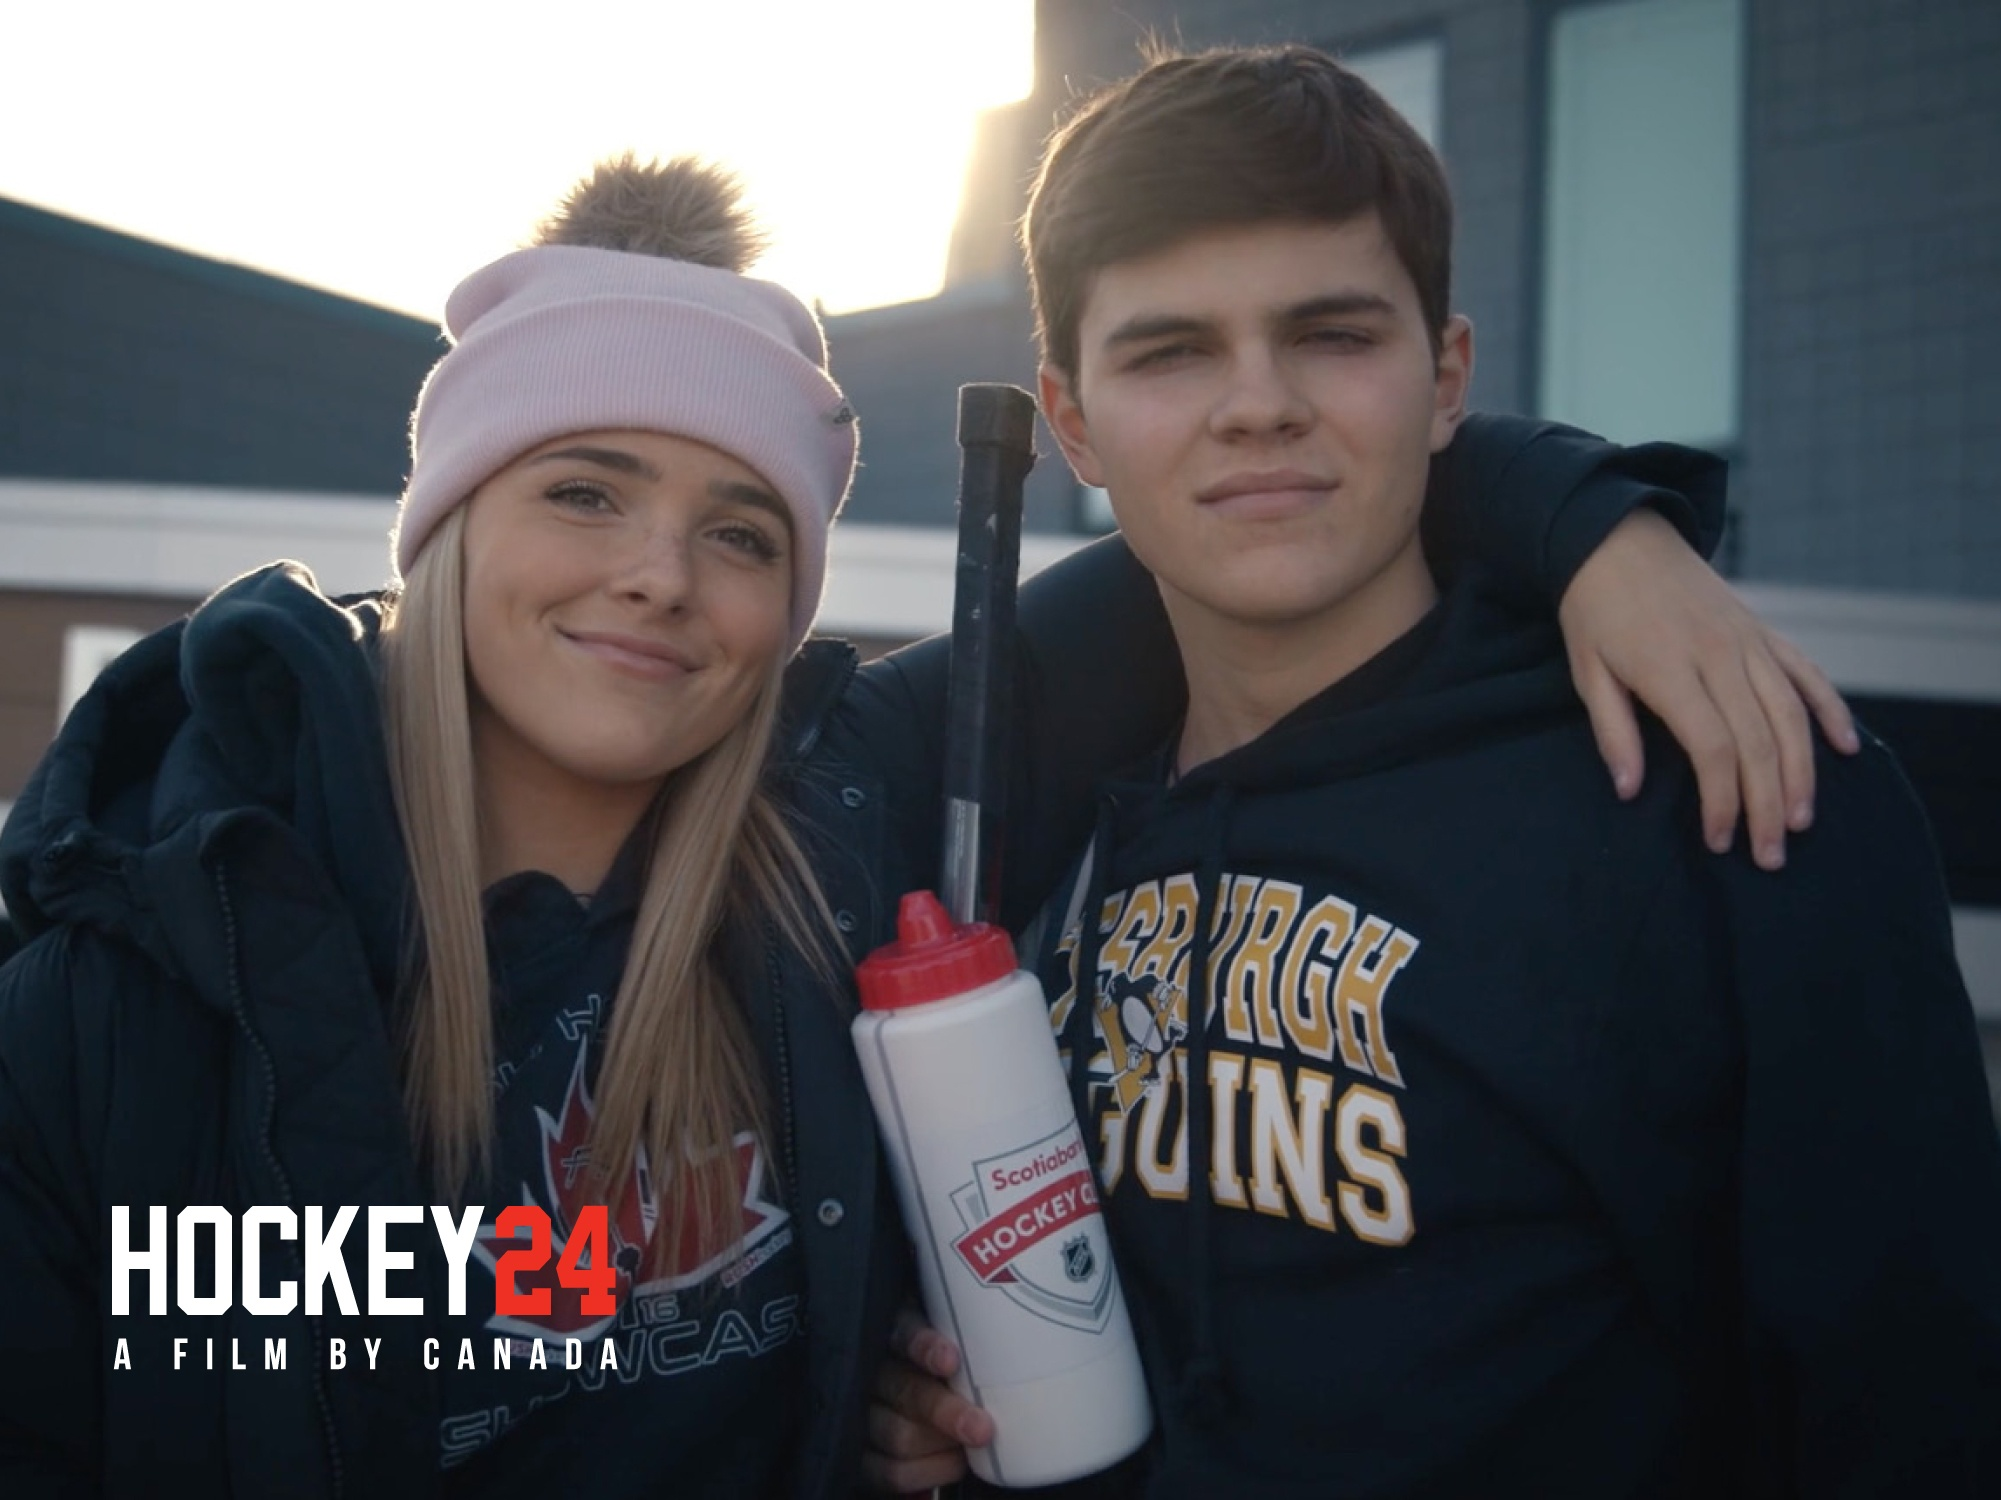 Thumbnail for Hockey 24: A Film by Canada